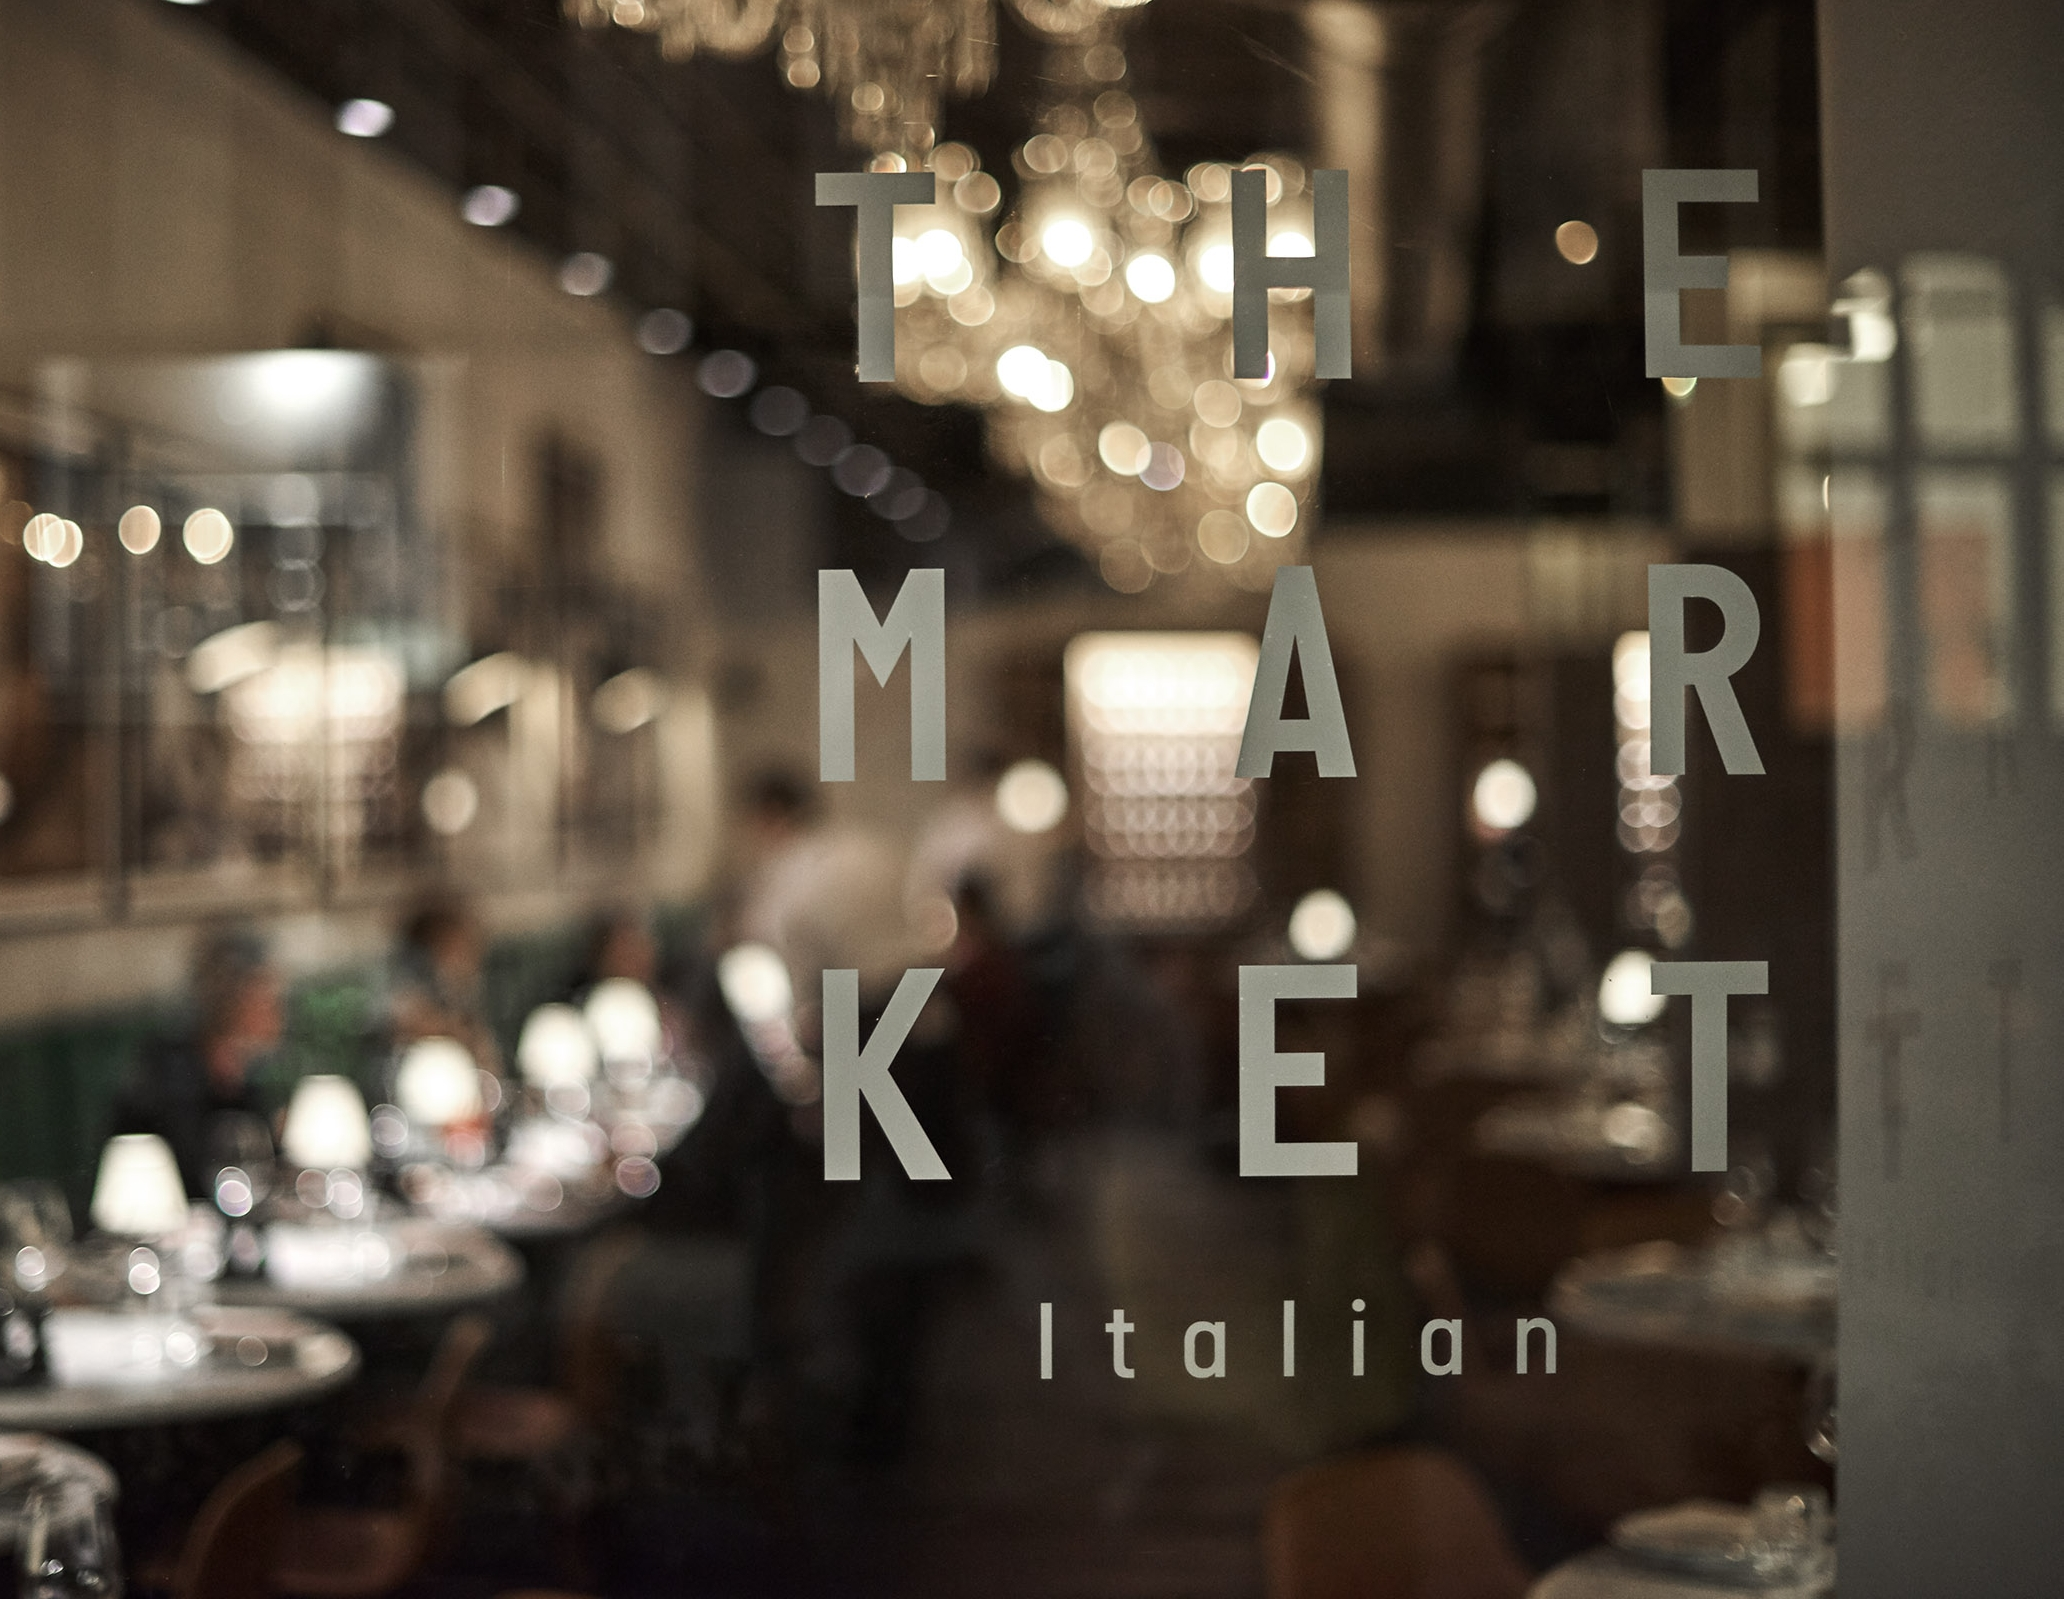 The_Market_Italian_02_Co.designstudio.jpg